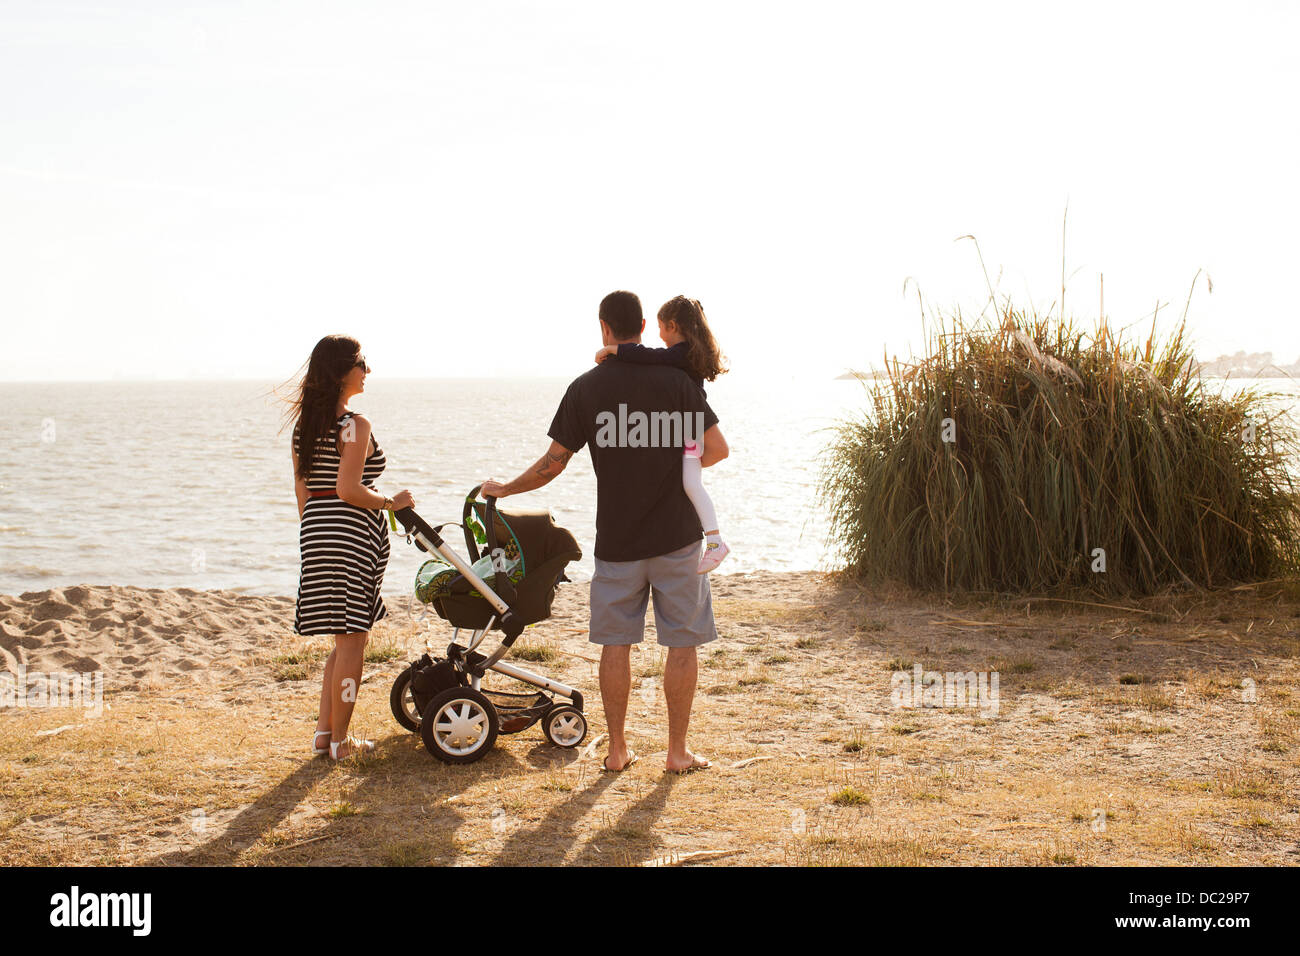 Family standing on beach looking at sea - Stock Image